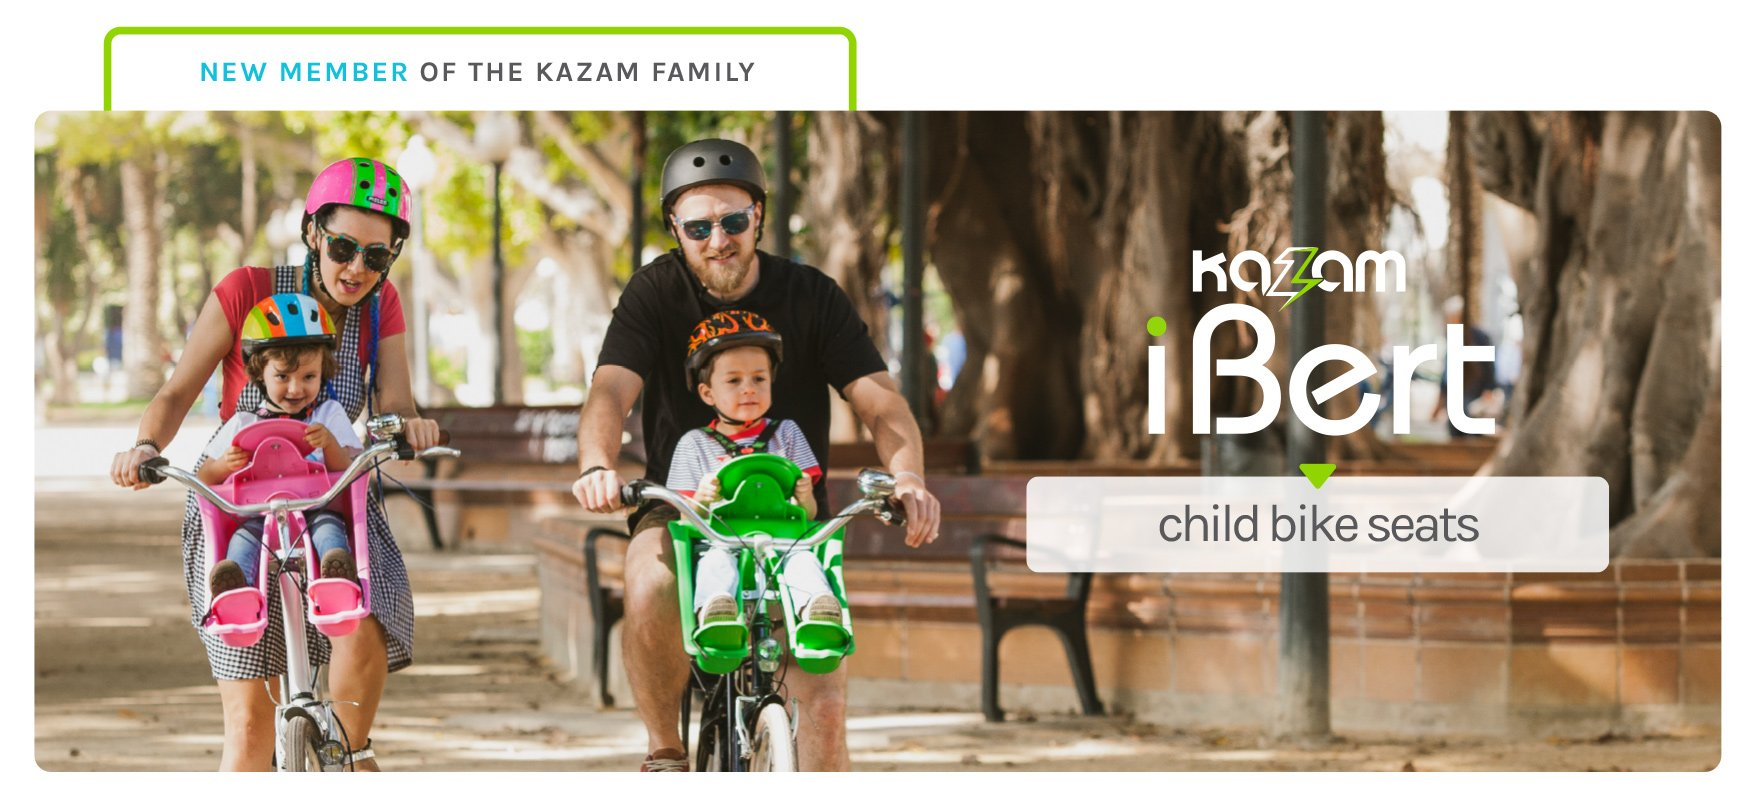 New Member of the Kazam Family - iBert by Kazam - Child Bike Seats - Young couple with their small children biking with Pink and Green Ibert Safe-T-Seats